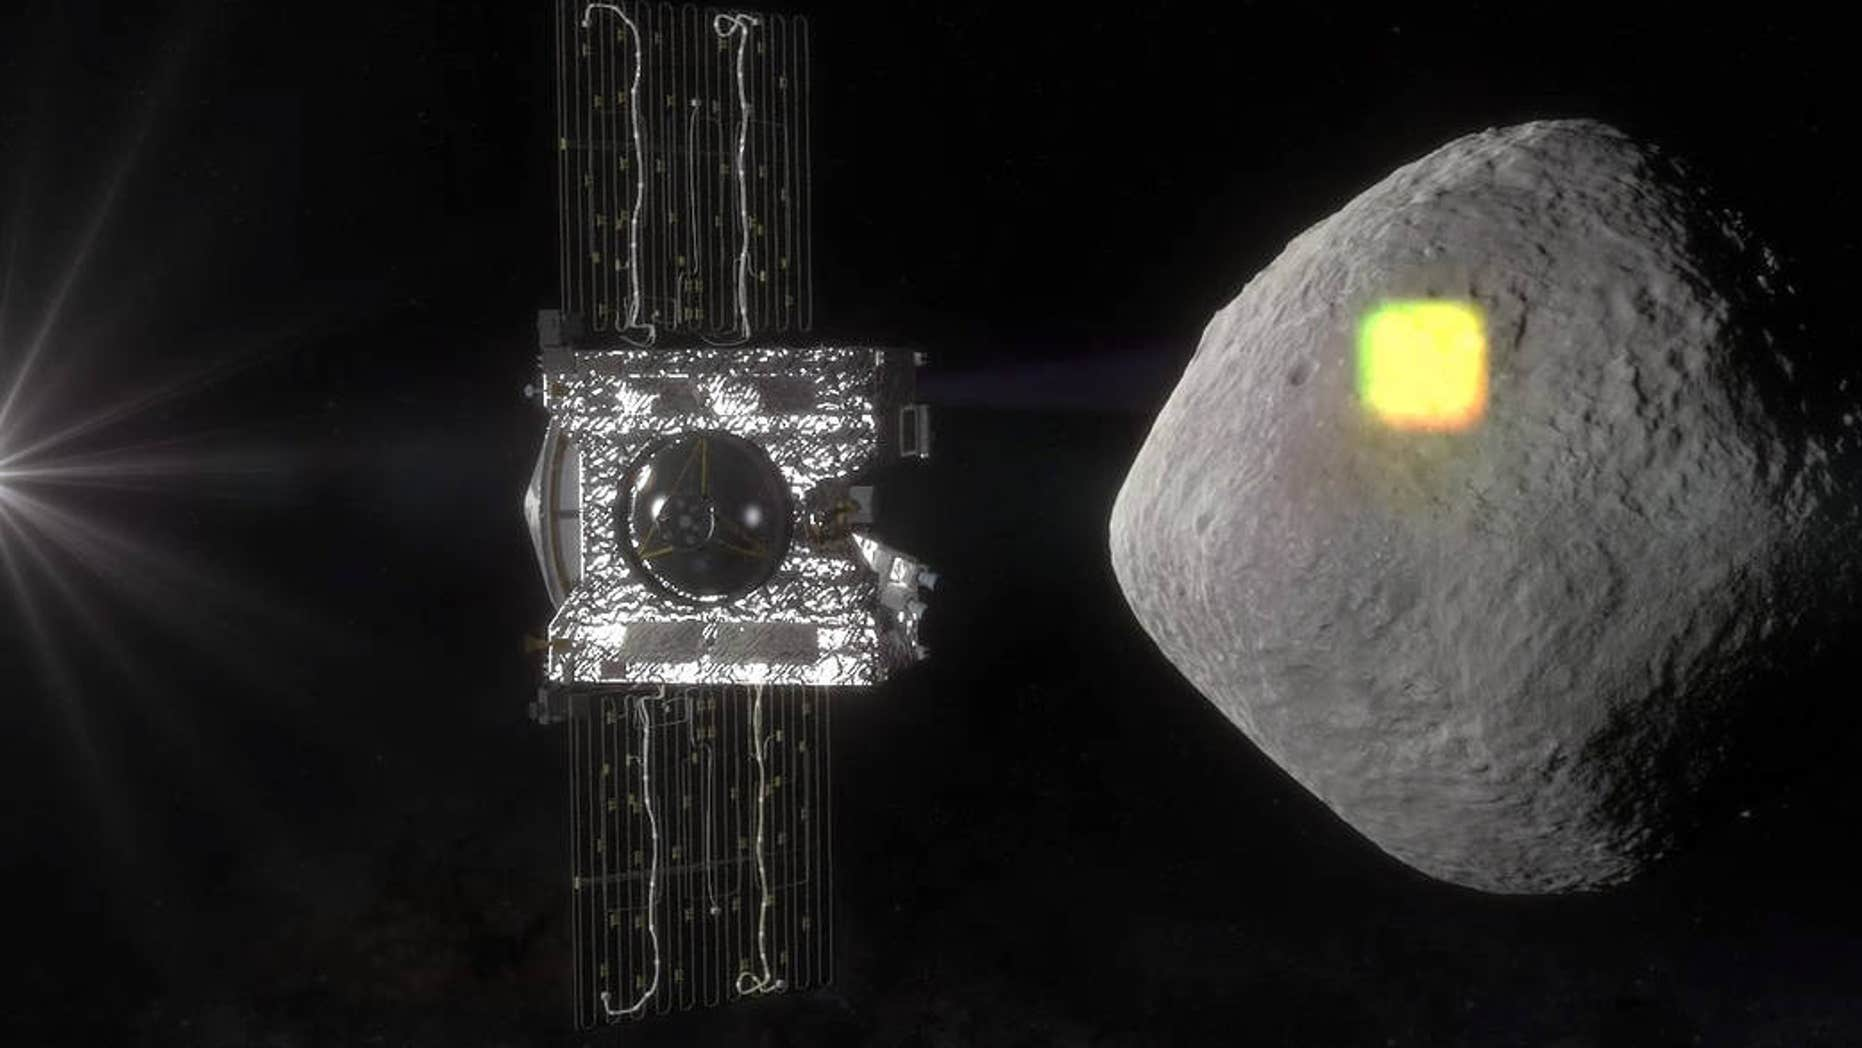 Artist's impression of OSIRIS-REx and asteroid Bennu. (NASA/Goddard/University of Arizona)